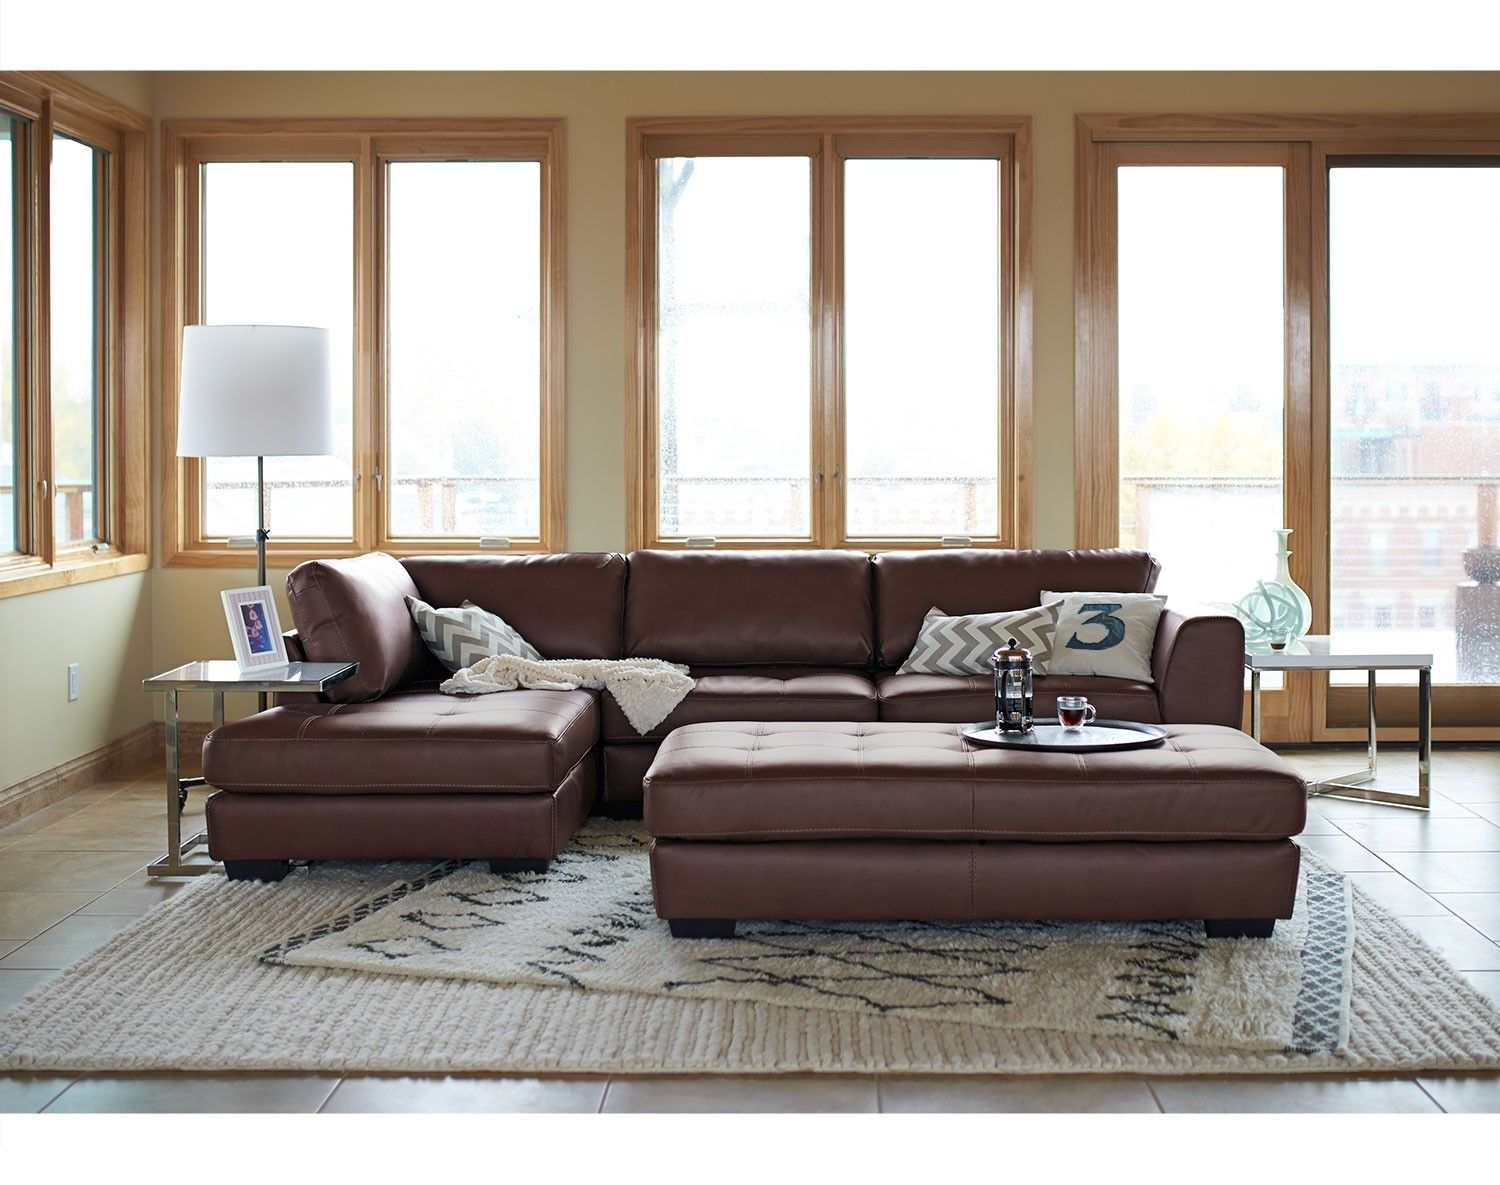 Value City Living Room Furniture As Sofas On Sale Or Clearance And Regarding City Furniture Cheap Living Room Sets City Living Room Living Room Furniture Sale